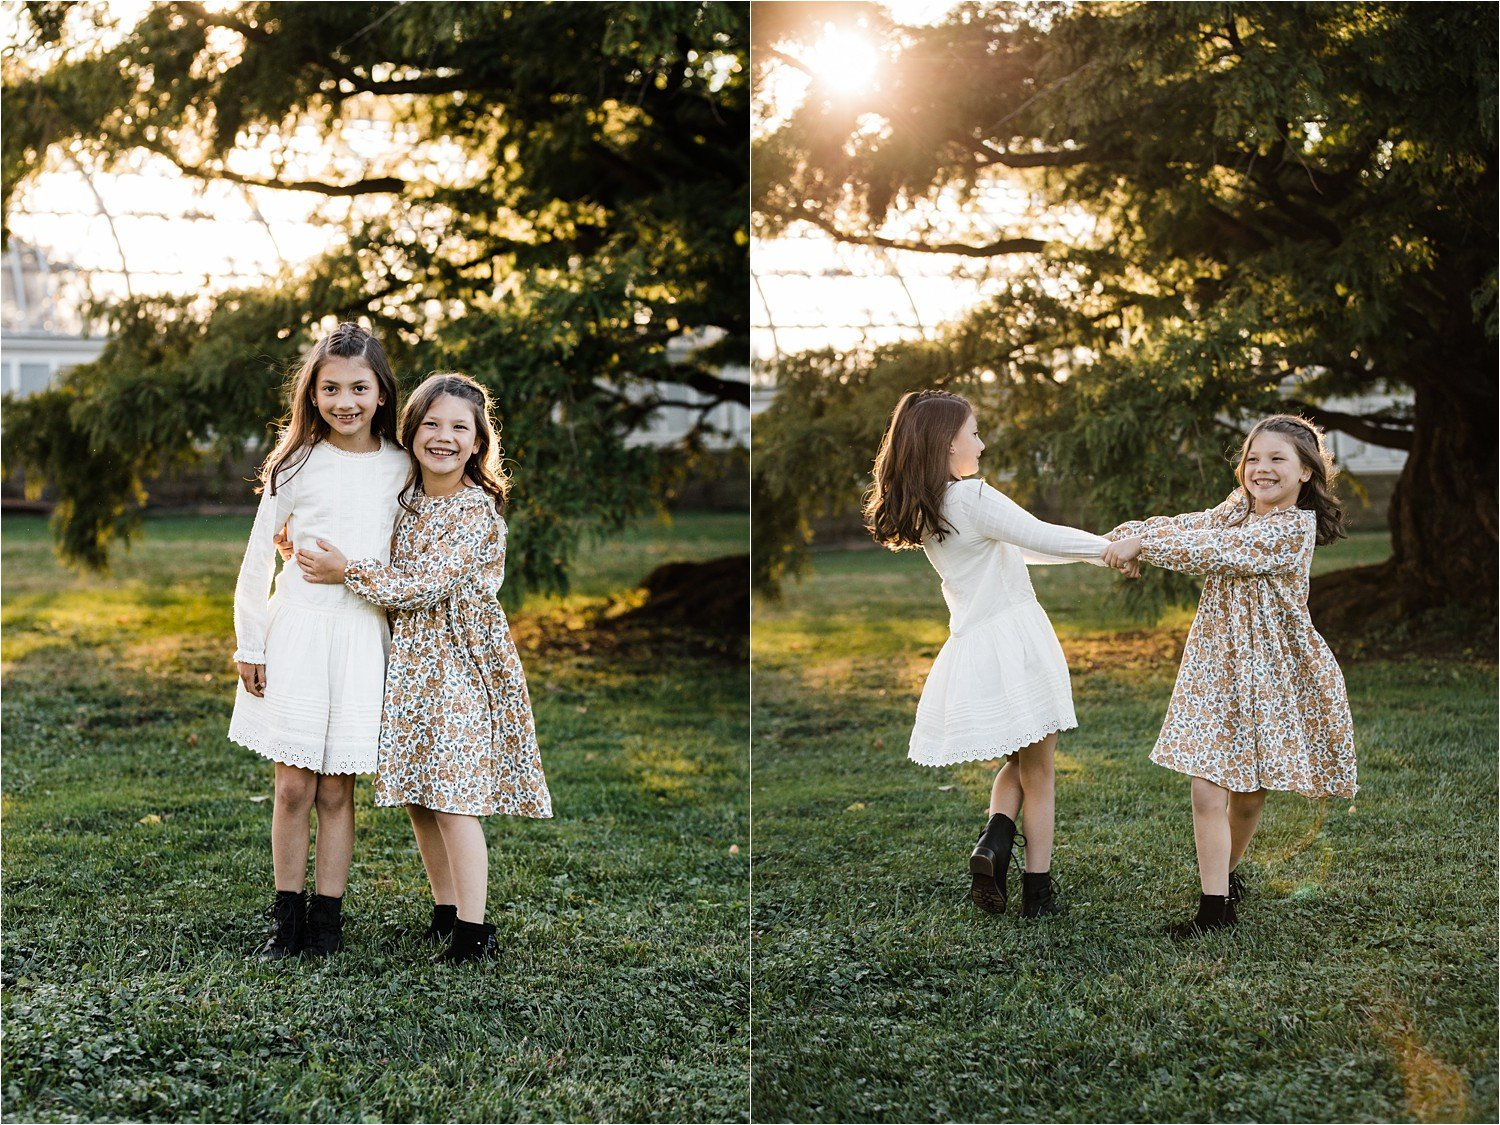 sweet sister images hugging and twirling in the sunset